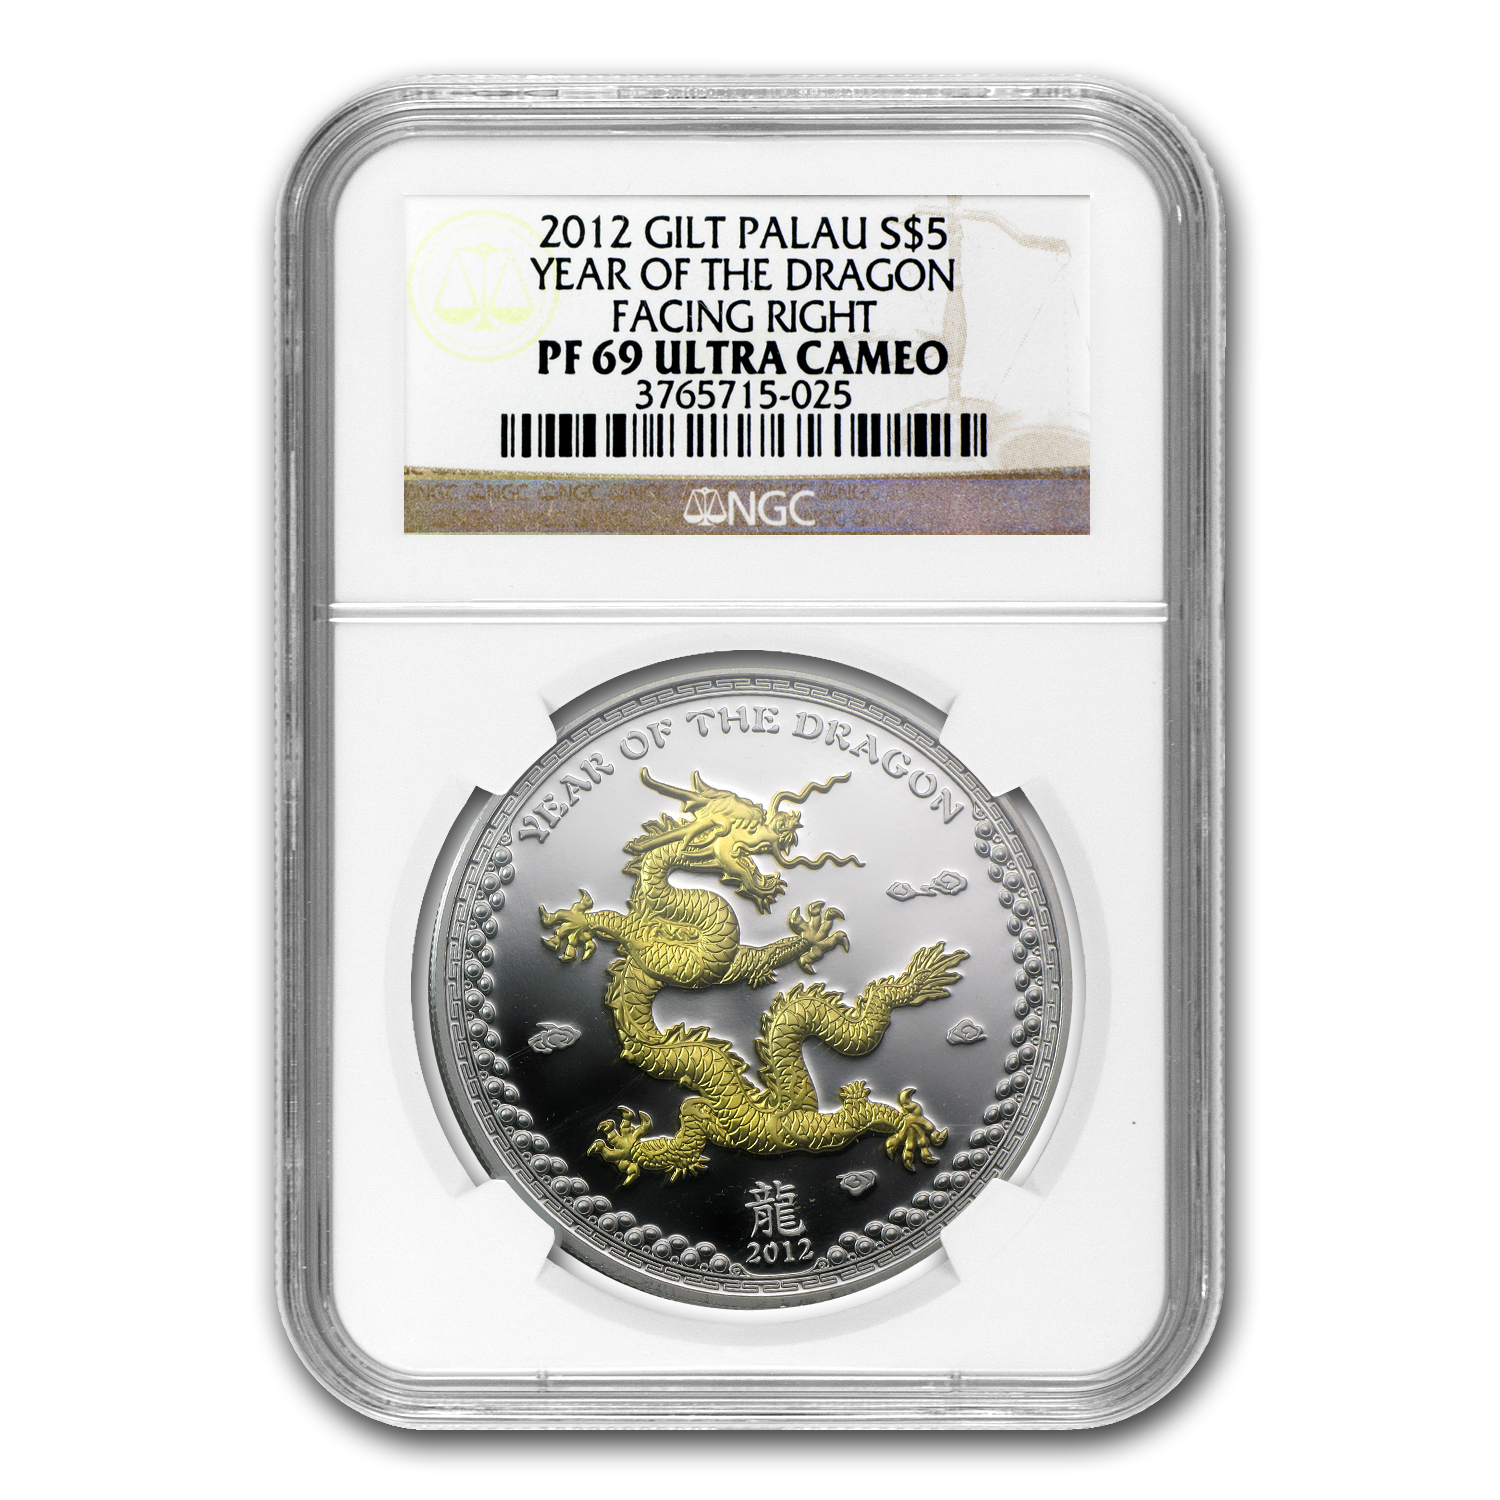 2012 Palau $5 Silver Dragon PF-69 NGC (Gilded, Right)